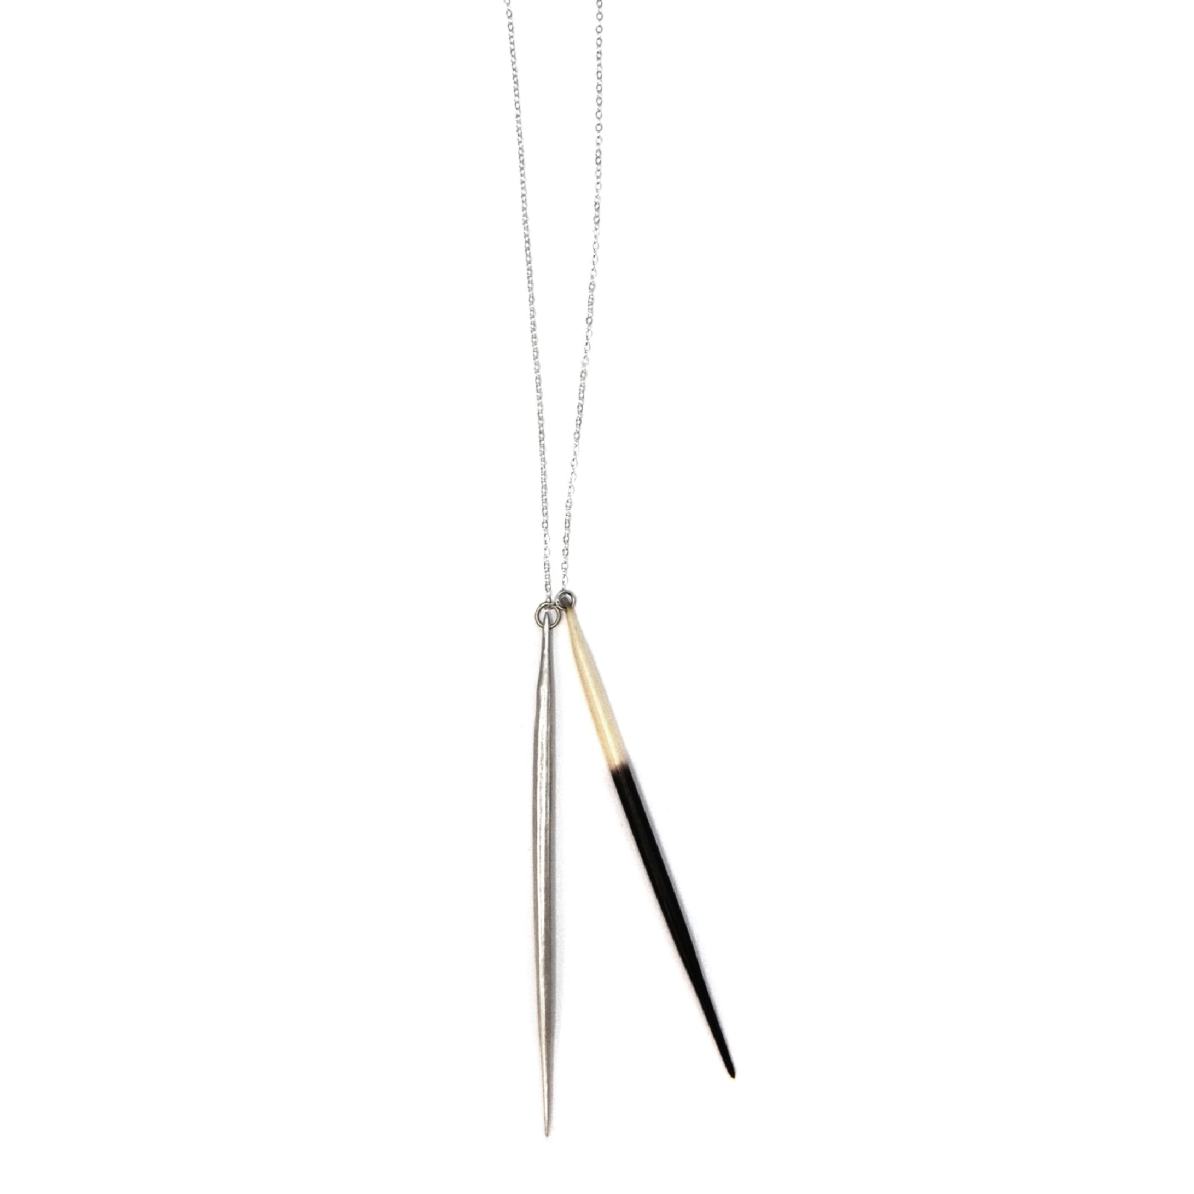 Porcupine Quill Pendant - Outlette Jewelry